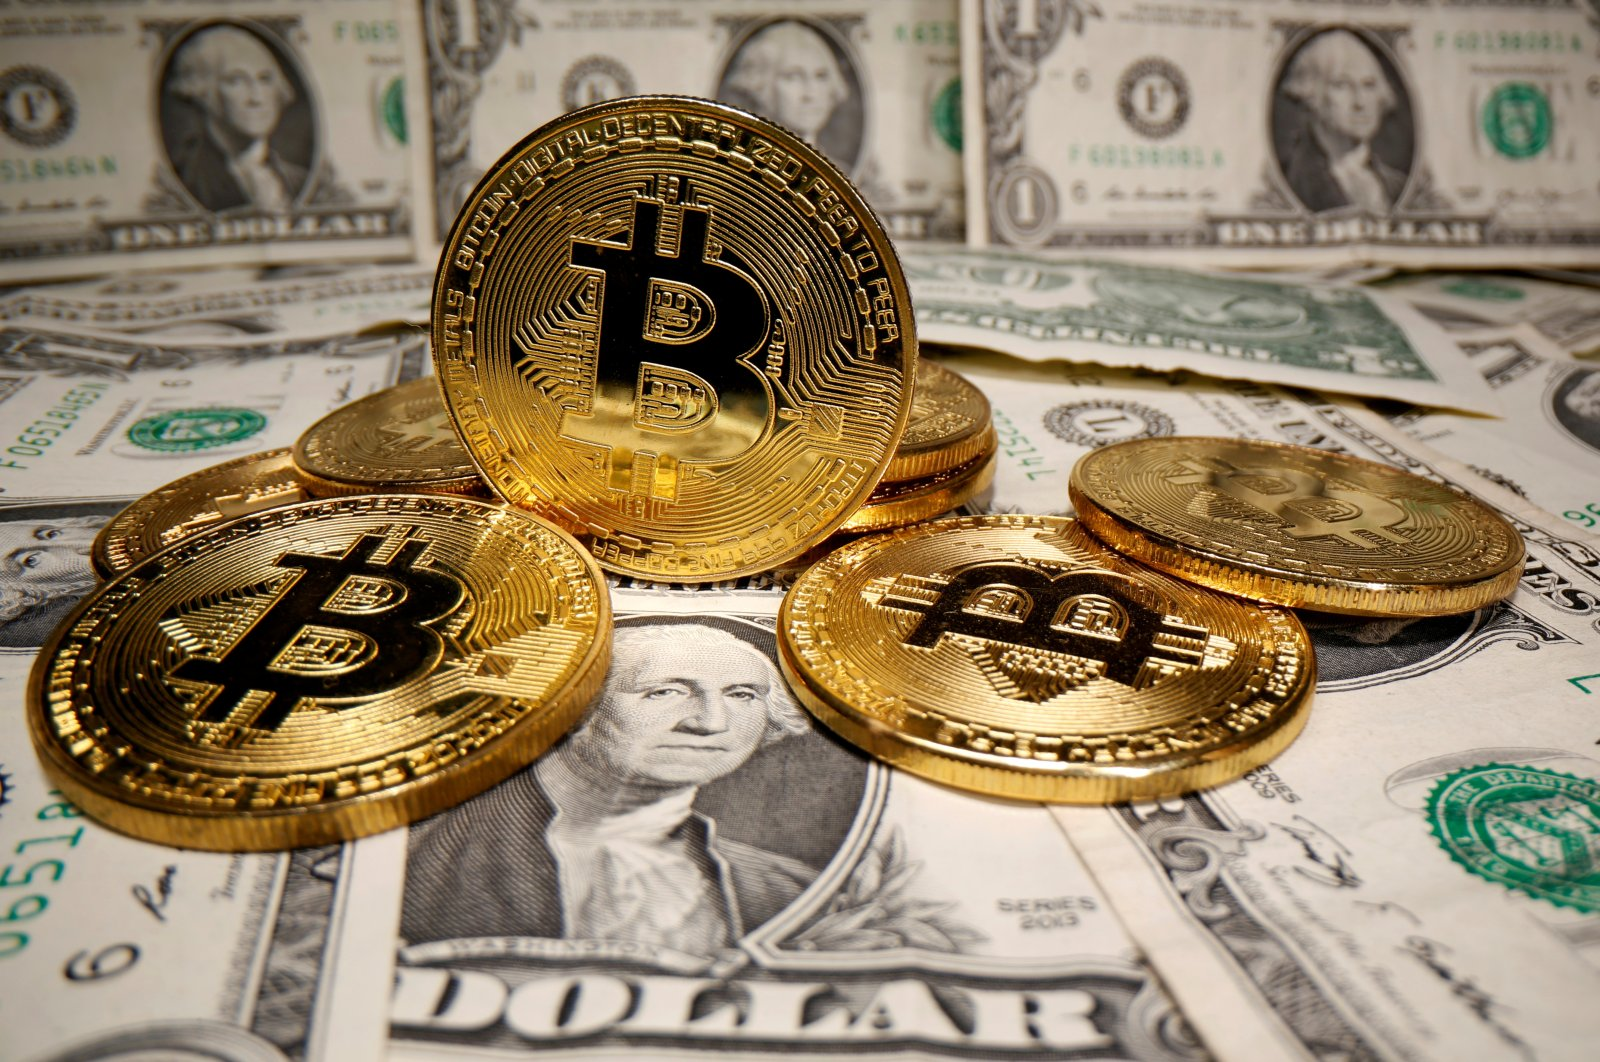 Representations of the cryptocurrency Bitcoin are placed on U.S. dollar banknotes in this illustration taken on May 26, 2020. (Reuters Photo)